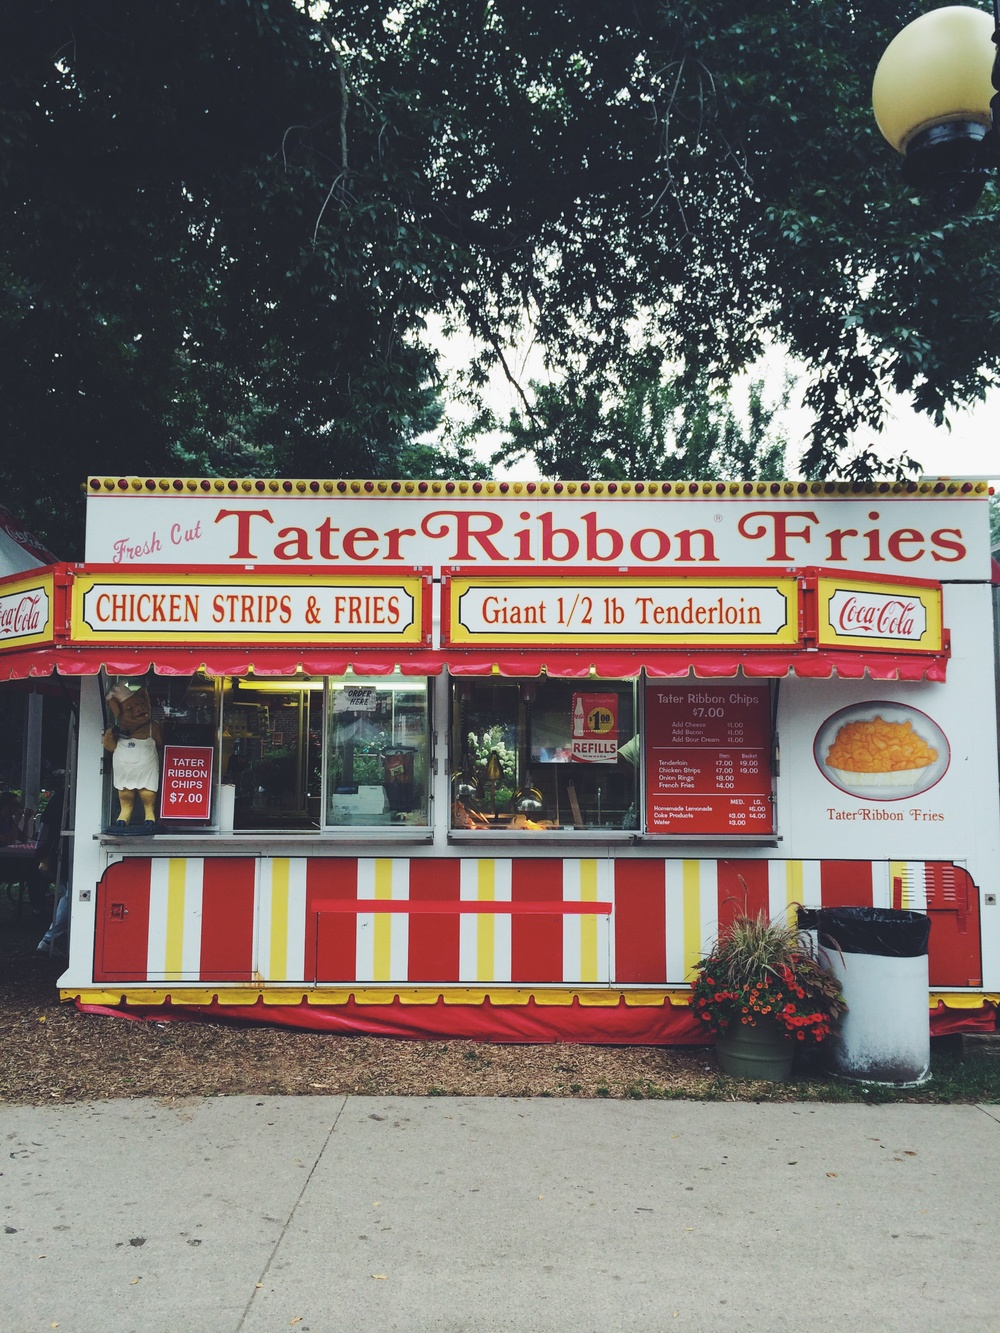 One of my favorite fair foods is the Tater Ribbon Fries with cheese ($8 for a huge plate, big enough to share).